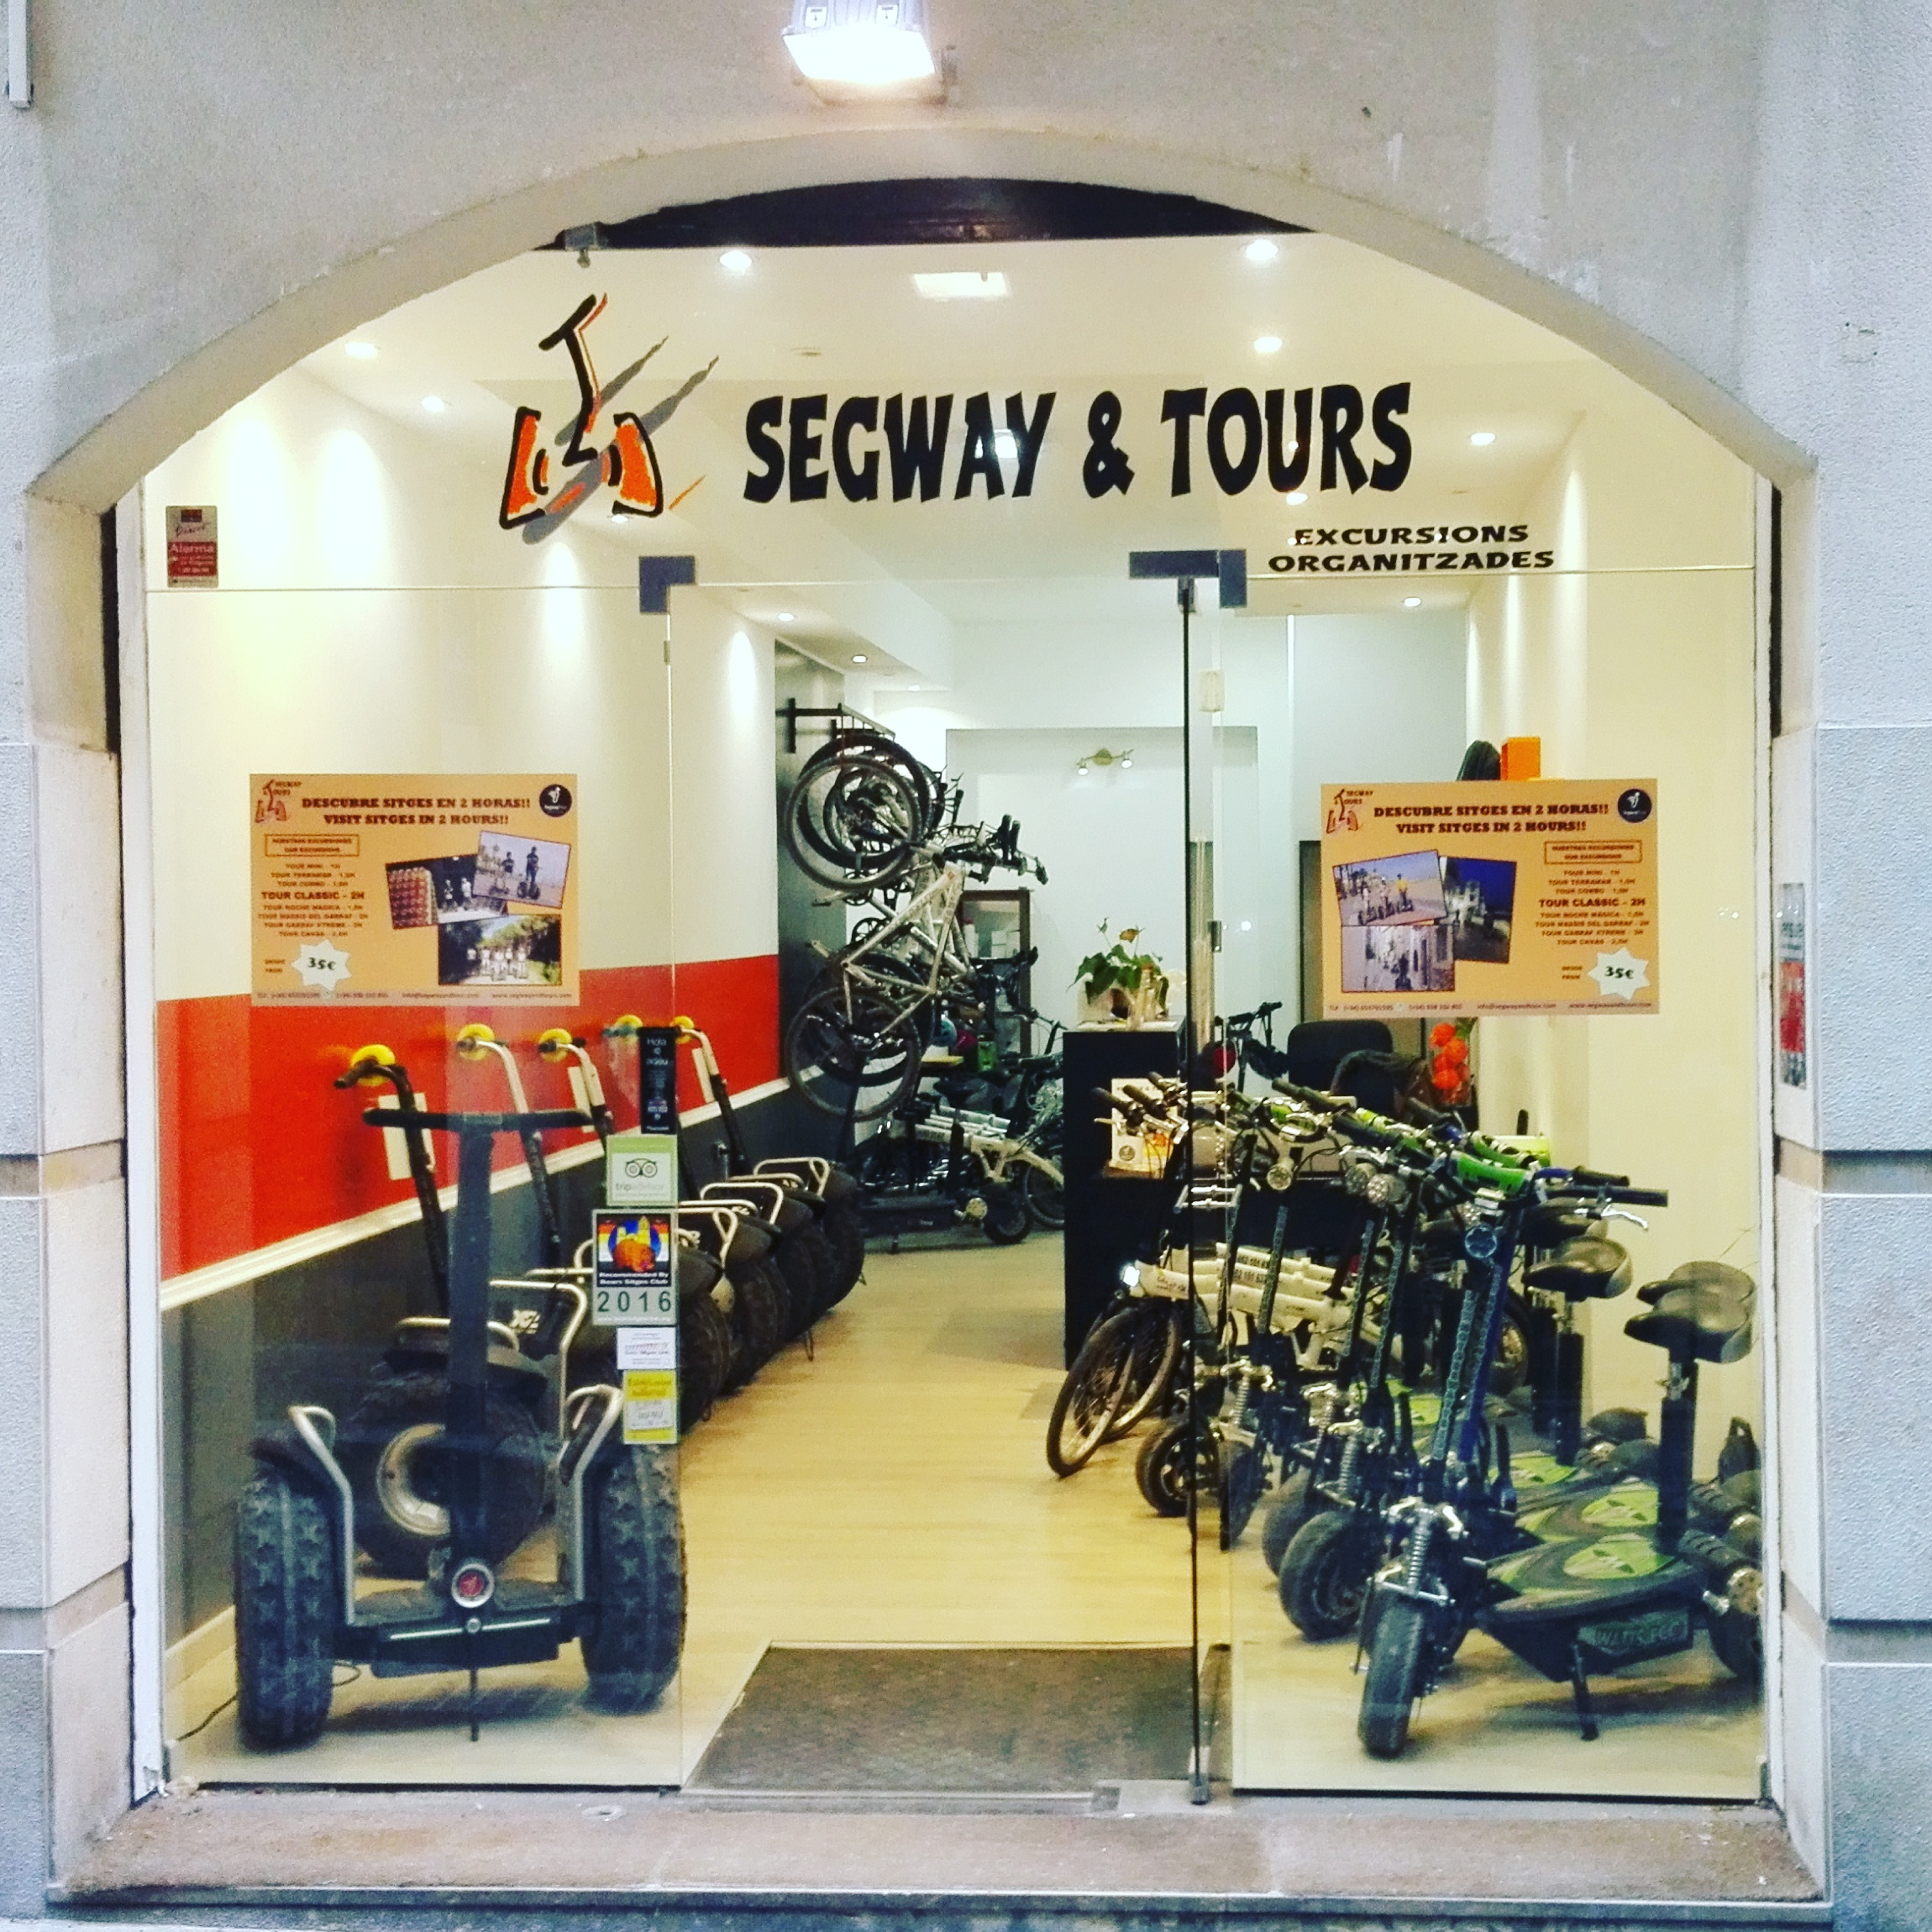 Segway Sitges Bookings- Segway and Tours